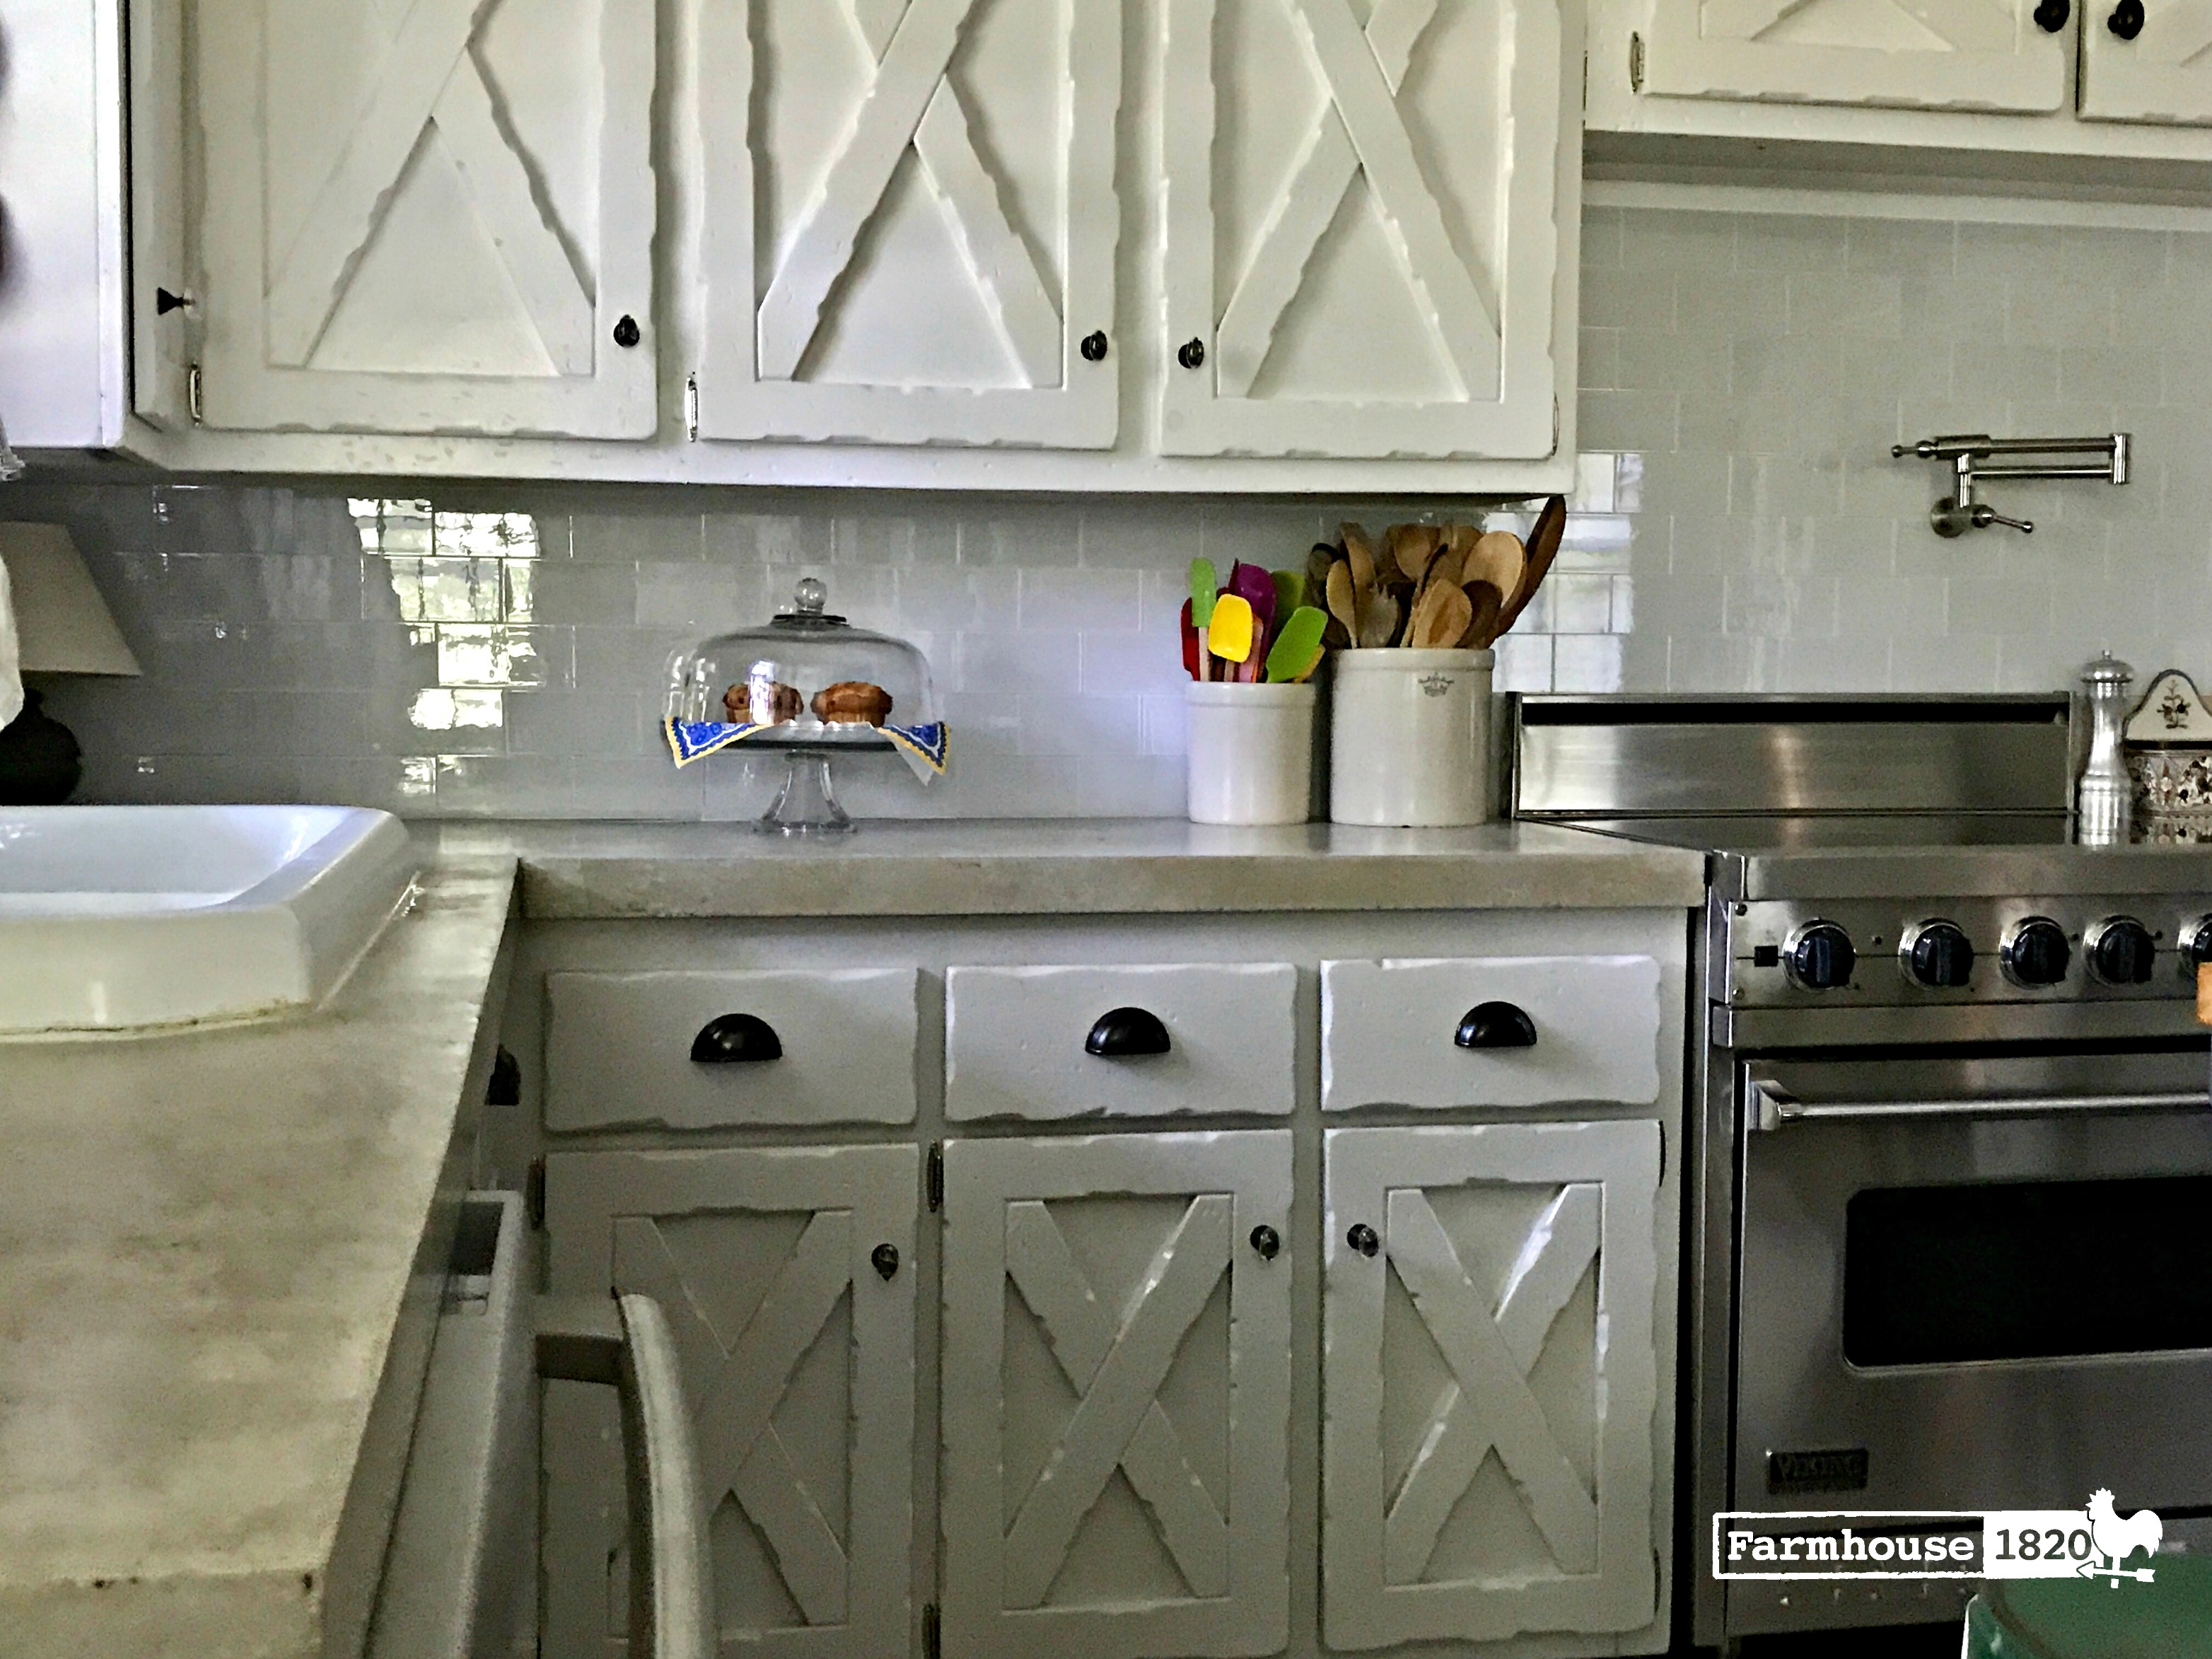 The Complete Kitchen Reveal - Farmhouse 1820 on Farmhouse Countertops  id=50231